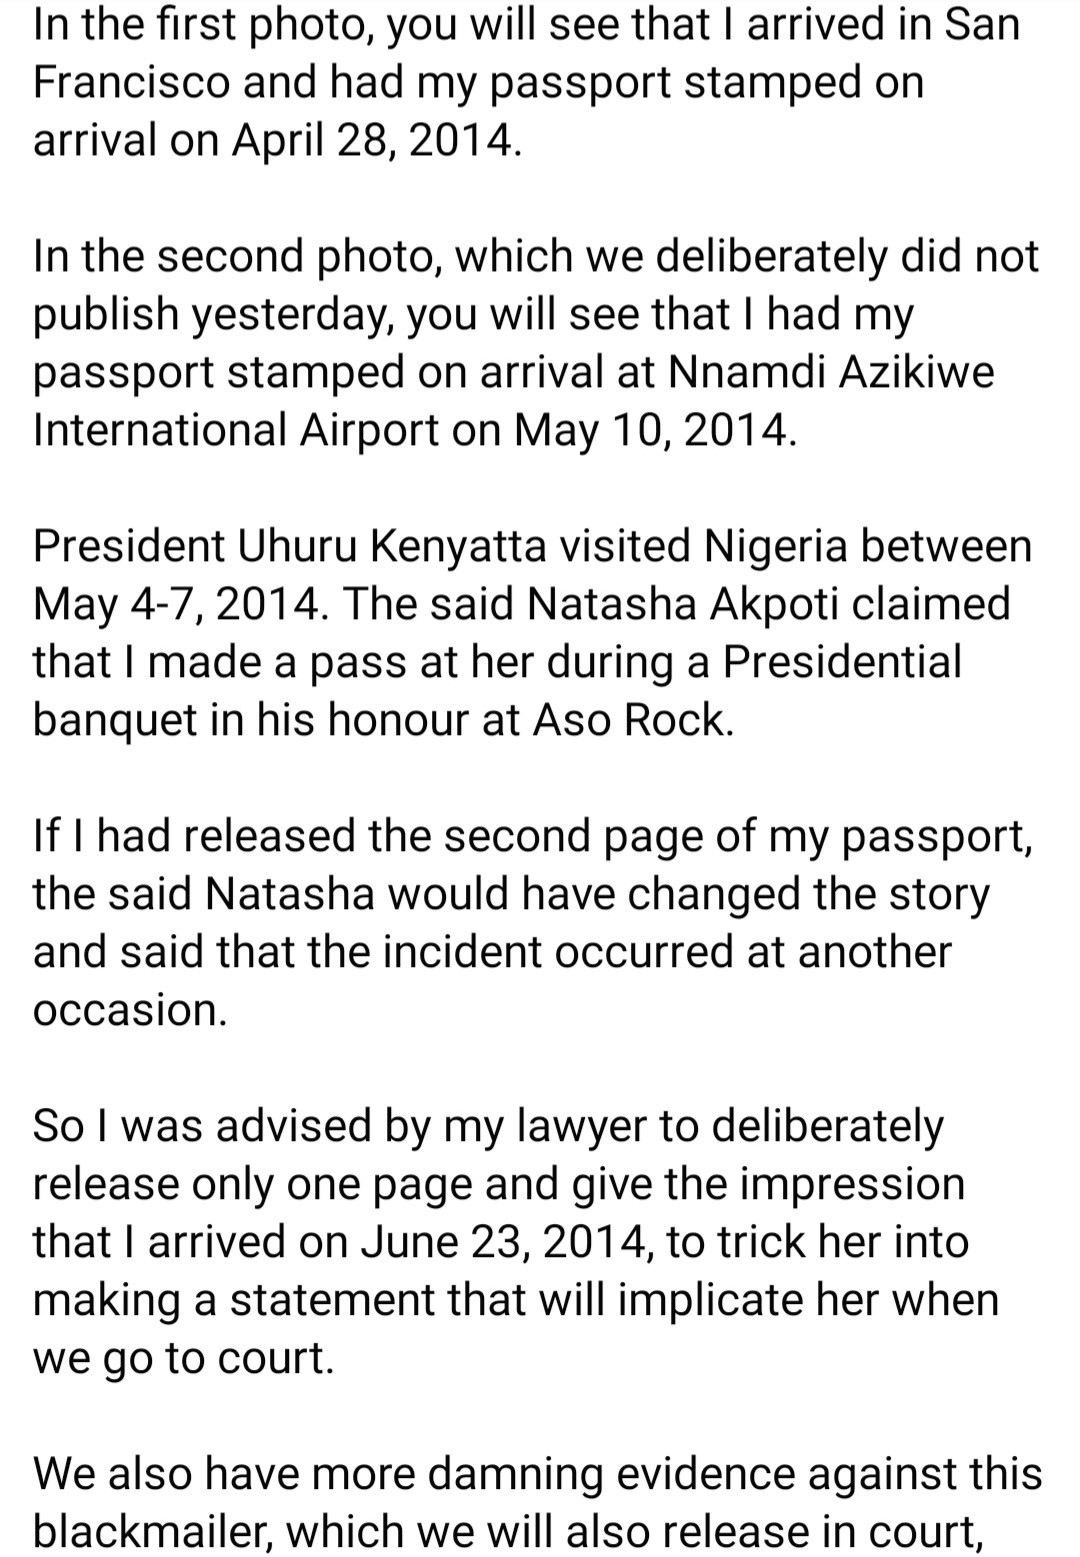 Reno Omokri offers $50,000 to anyone who can provide photo of him at the Aso Villa event where Natasha Akpoti claimed he made a pass at her